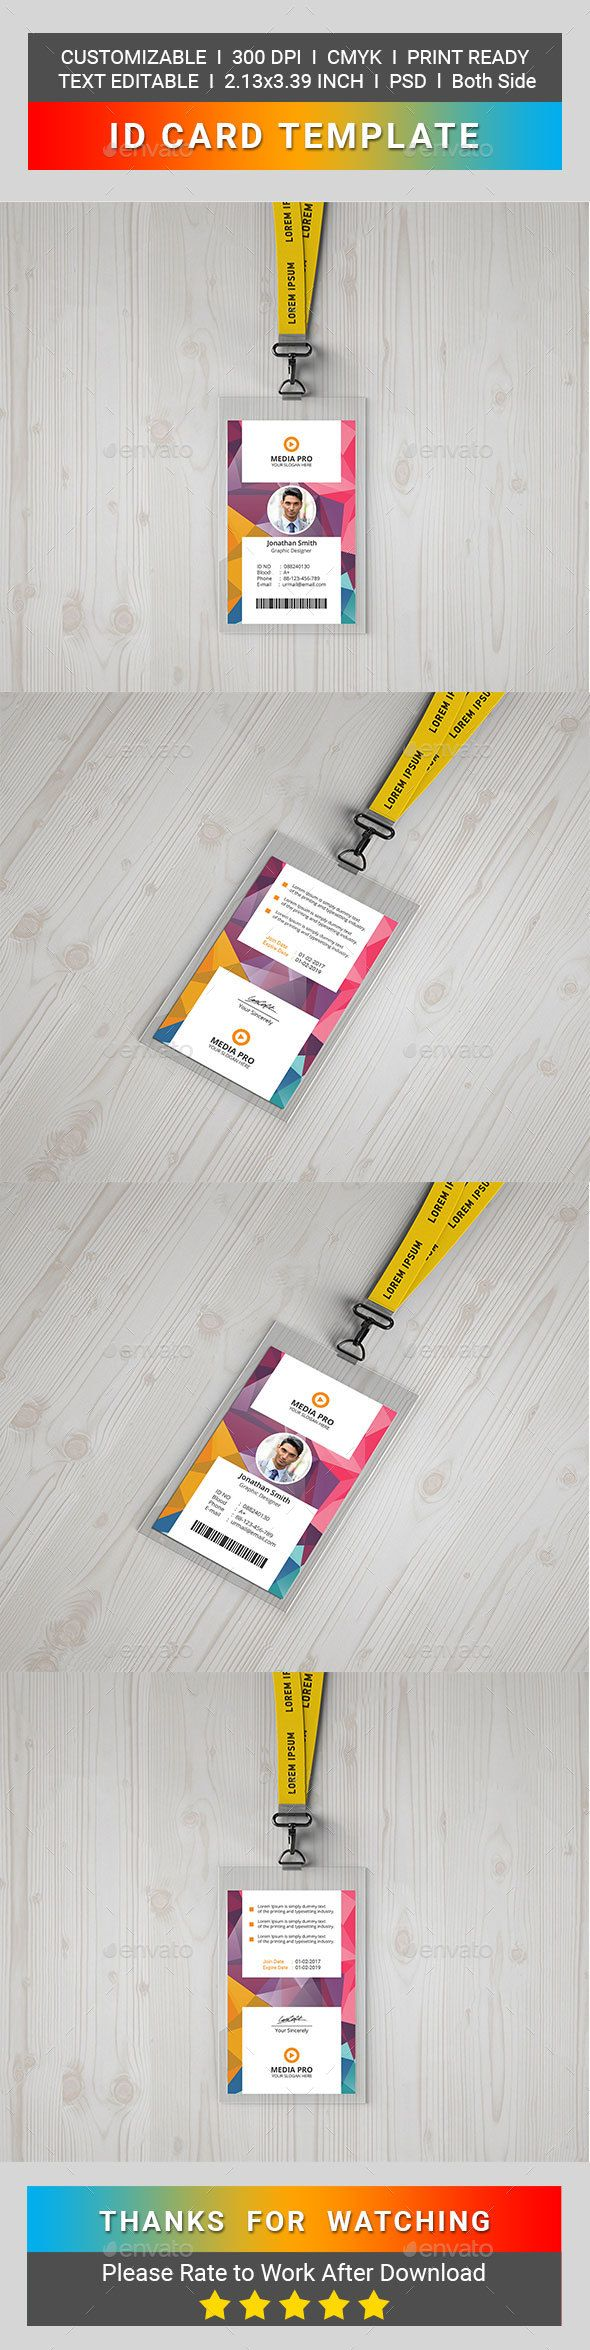 ID Card - Miscellaneous Print Templates | print template | Pinterest ...